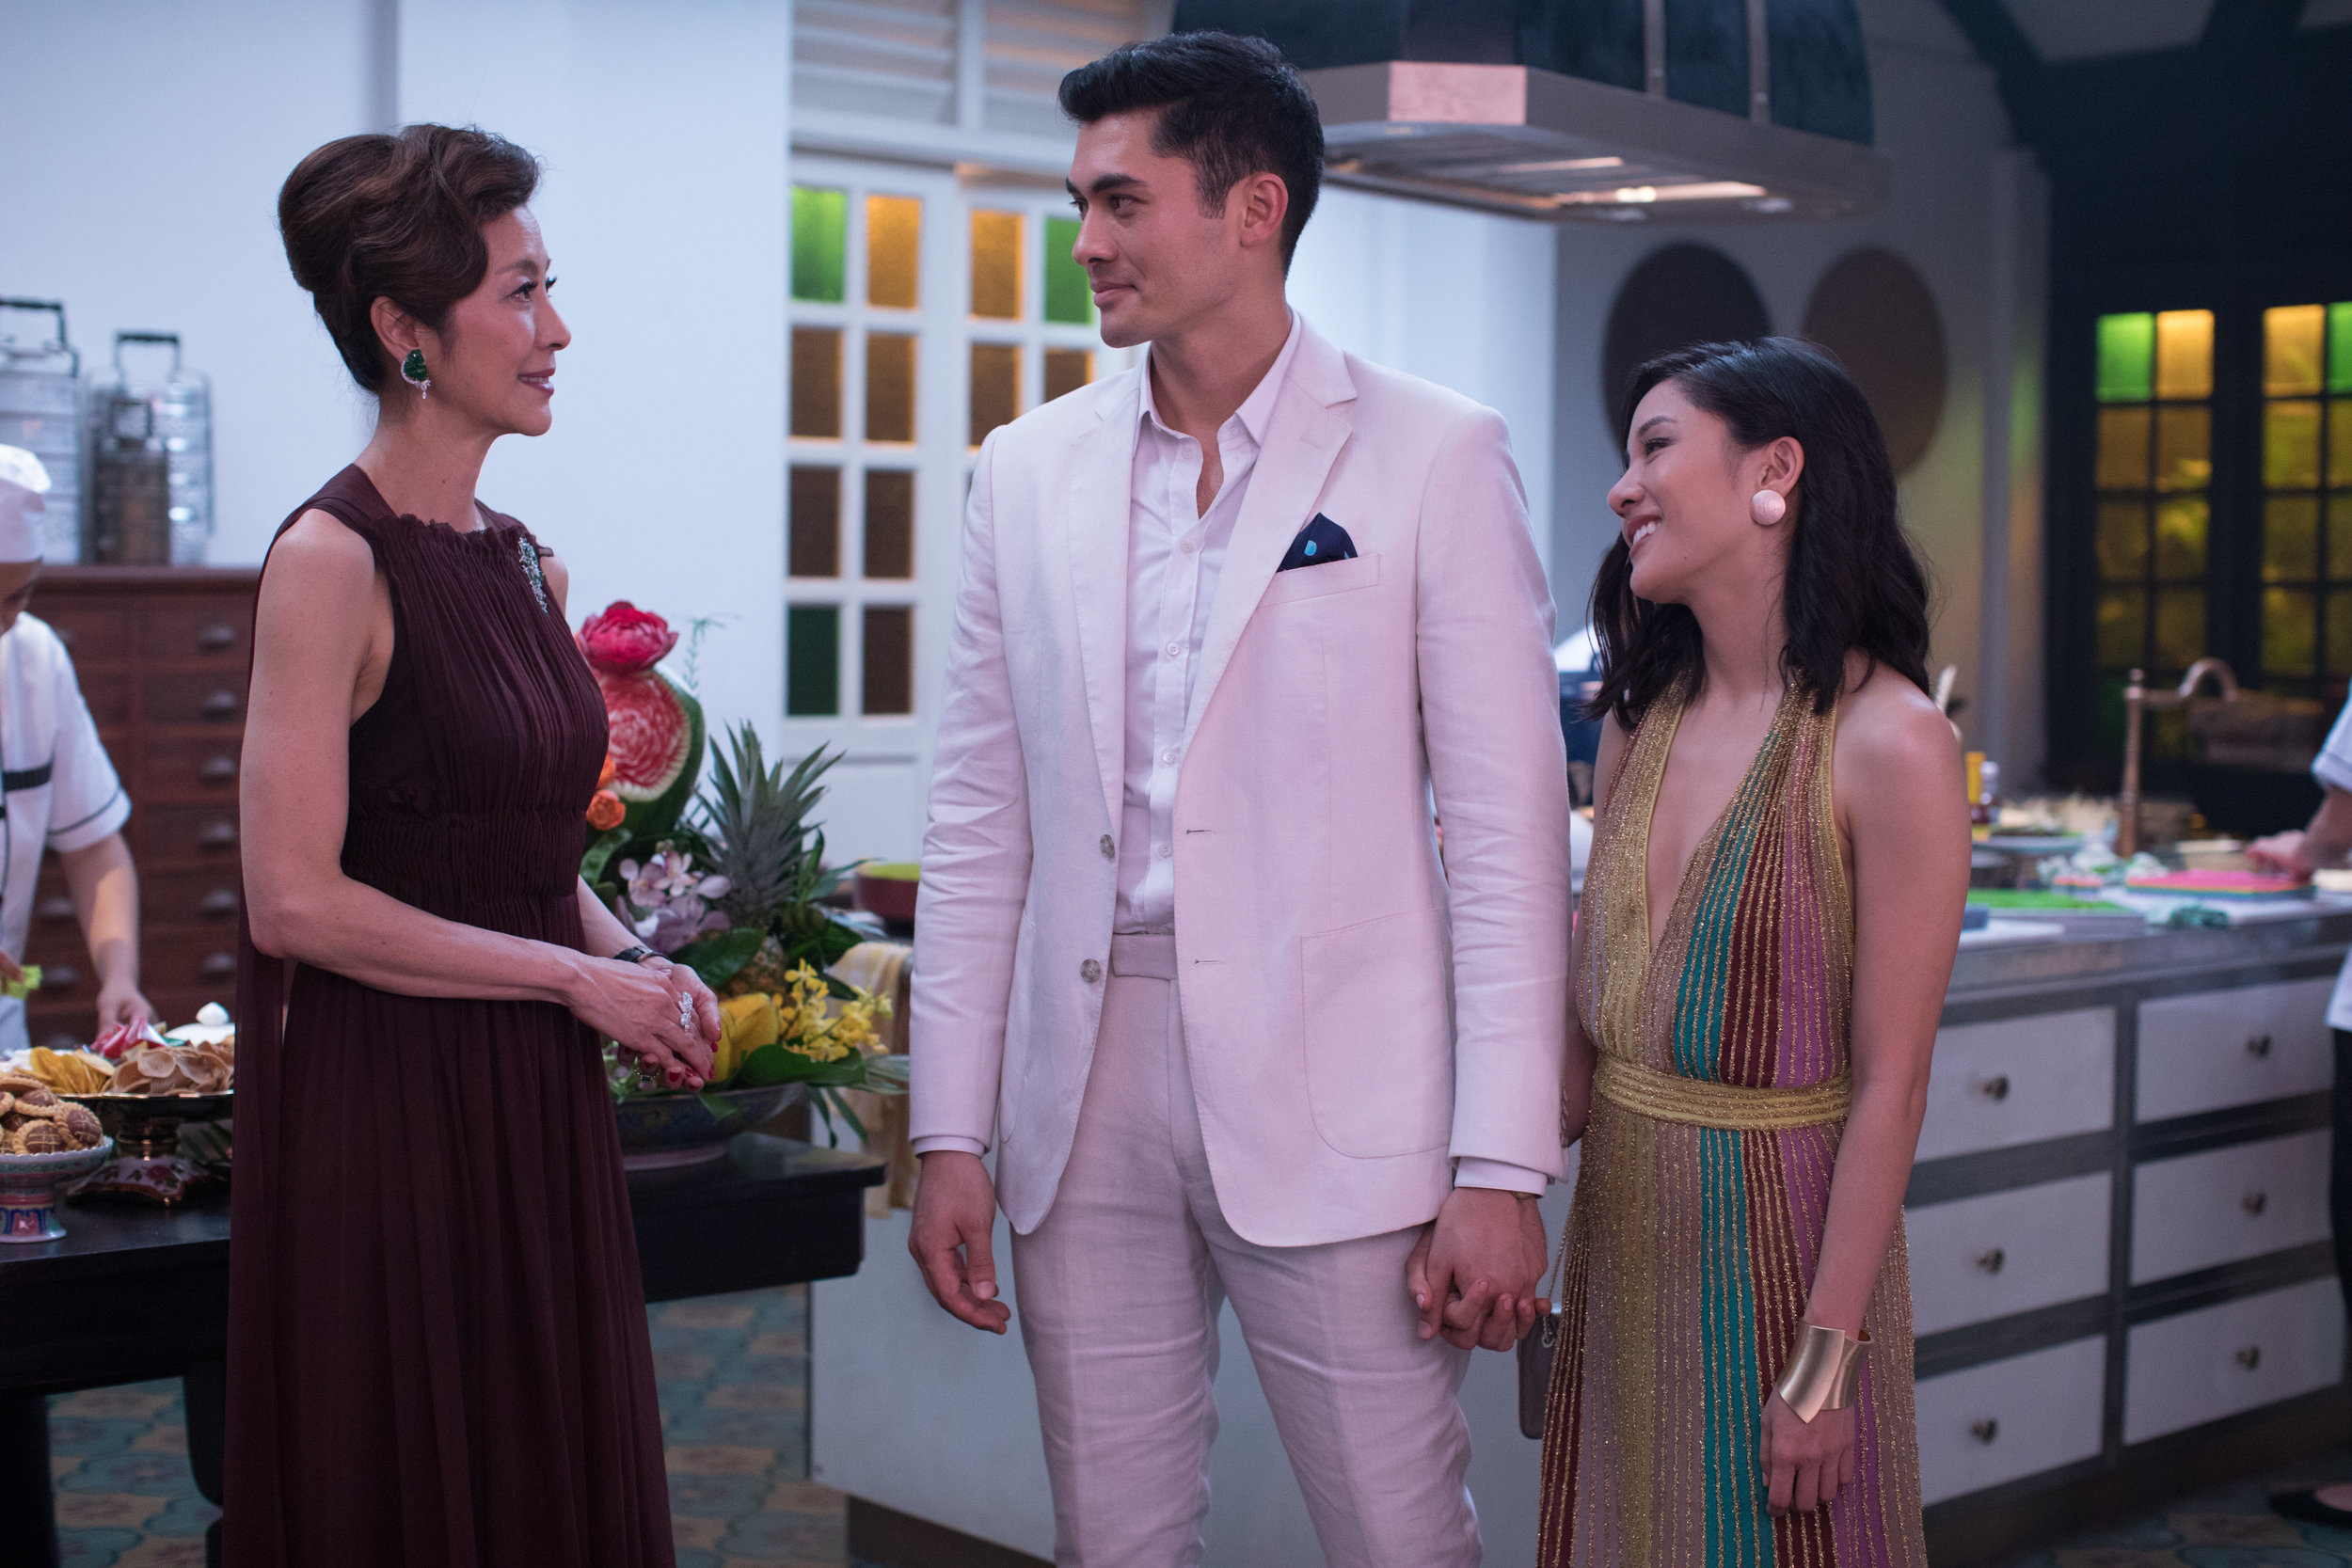 Meet the (crazy rich) family. Fielding & Wu meet the groom's mom, Michelle Yeoh